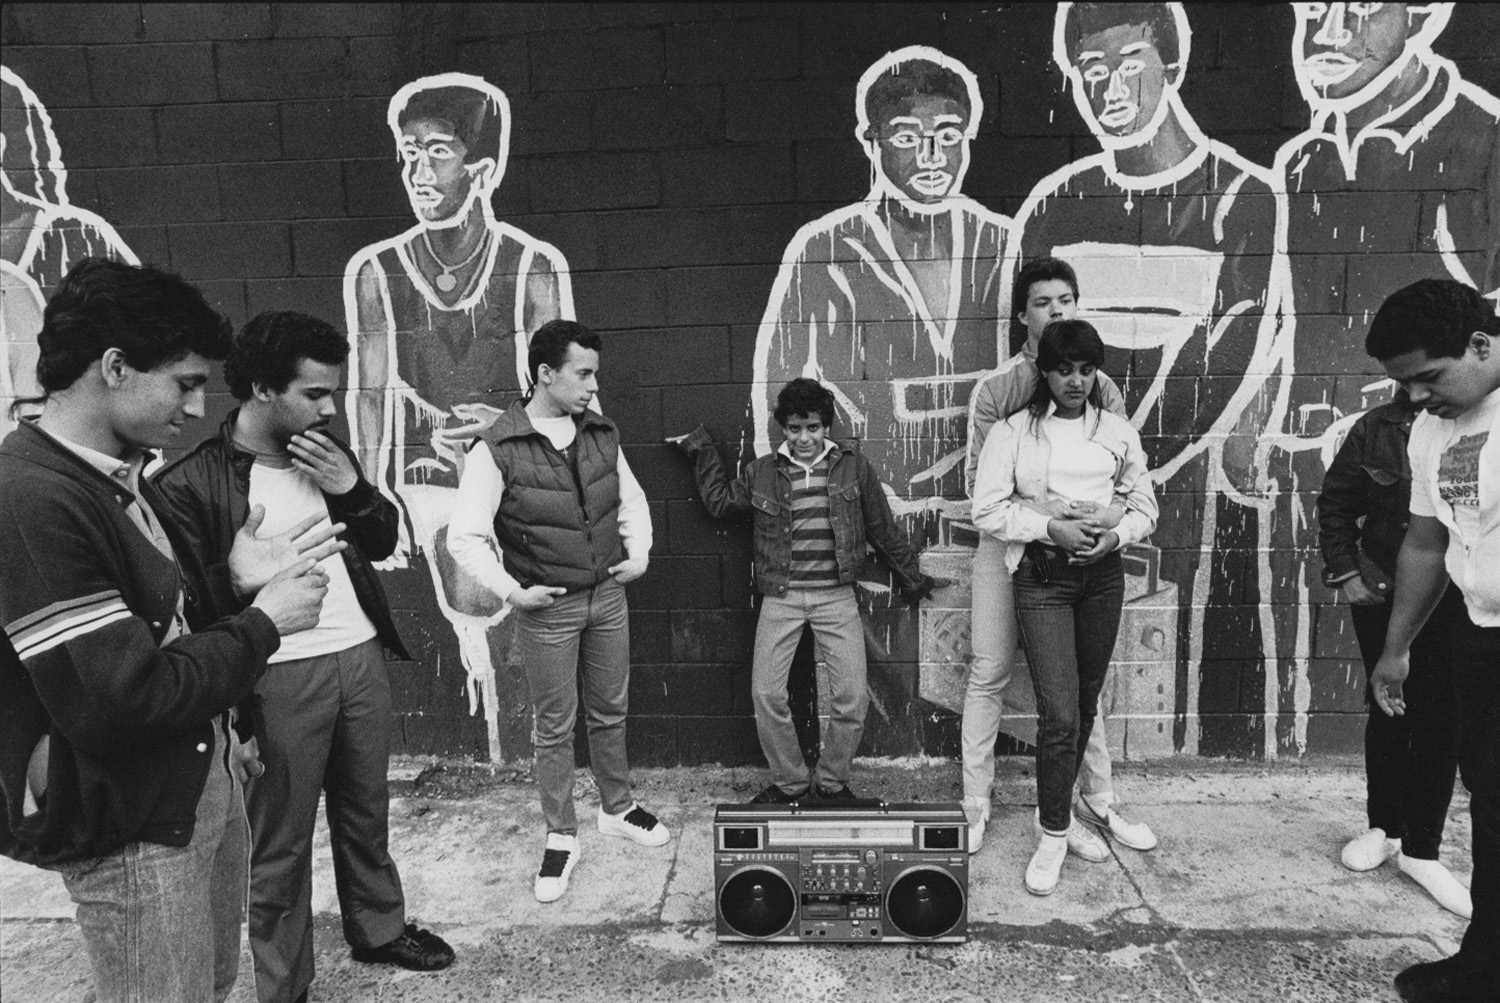 Some of the kids from Suffolk Street who posed for Bobby G's mural. Photo by Ian Dryden